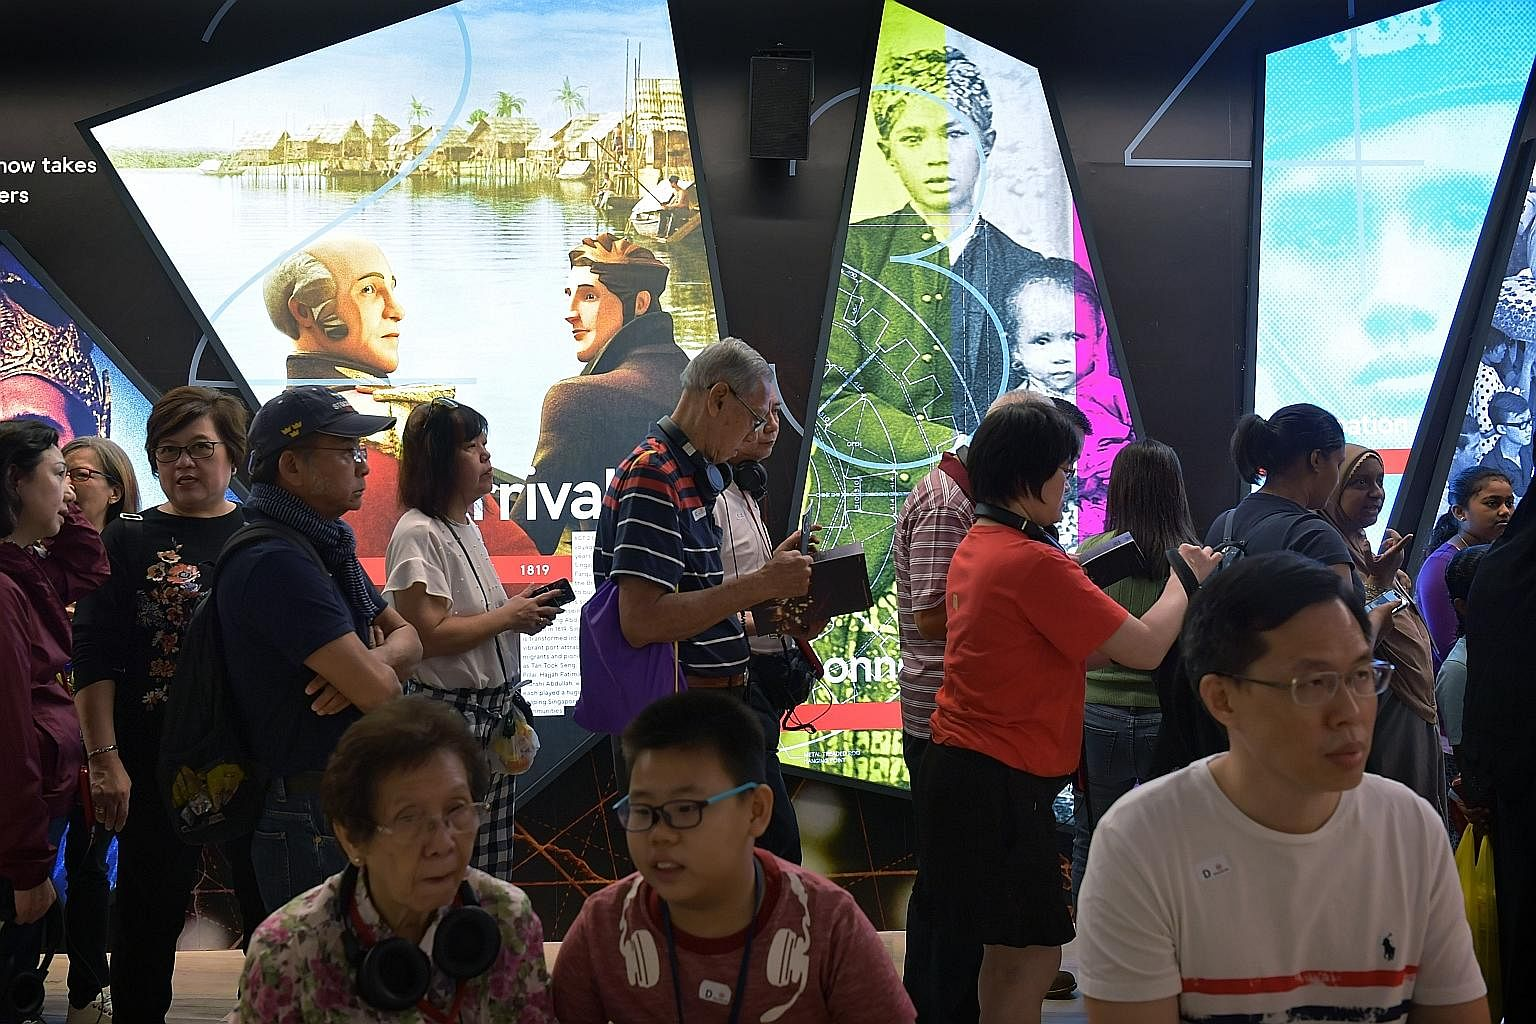 Visitors queueing up for the Bicentennial Experience at Fort Canning Centre. Our debates about identity - be it personal or national - have to take place in a wider regional context where we need to reconnect with our region as a whole, says the writ